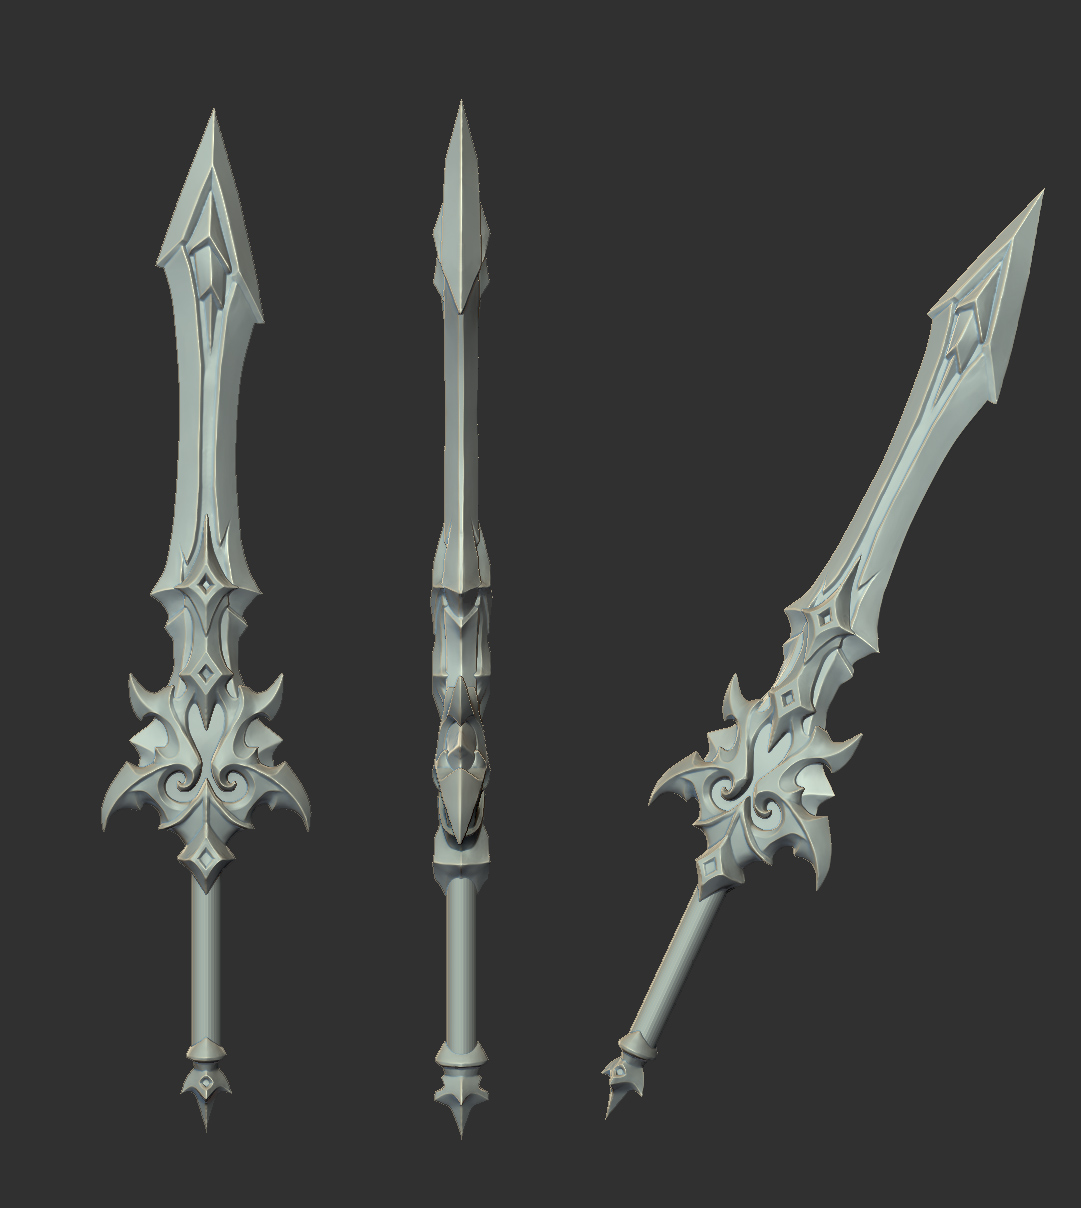 Abaddon_Alt_Weapon_Sculpt_01.jpg